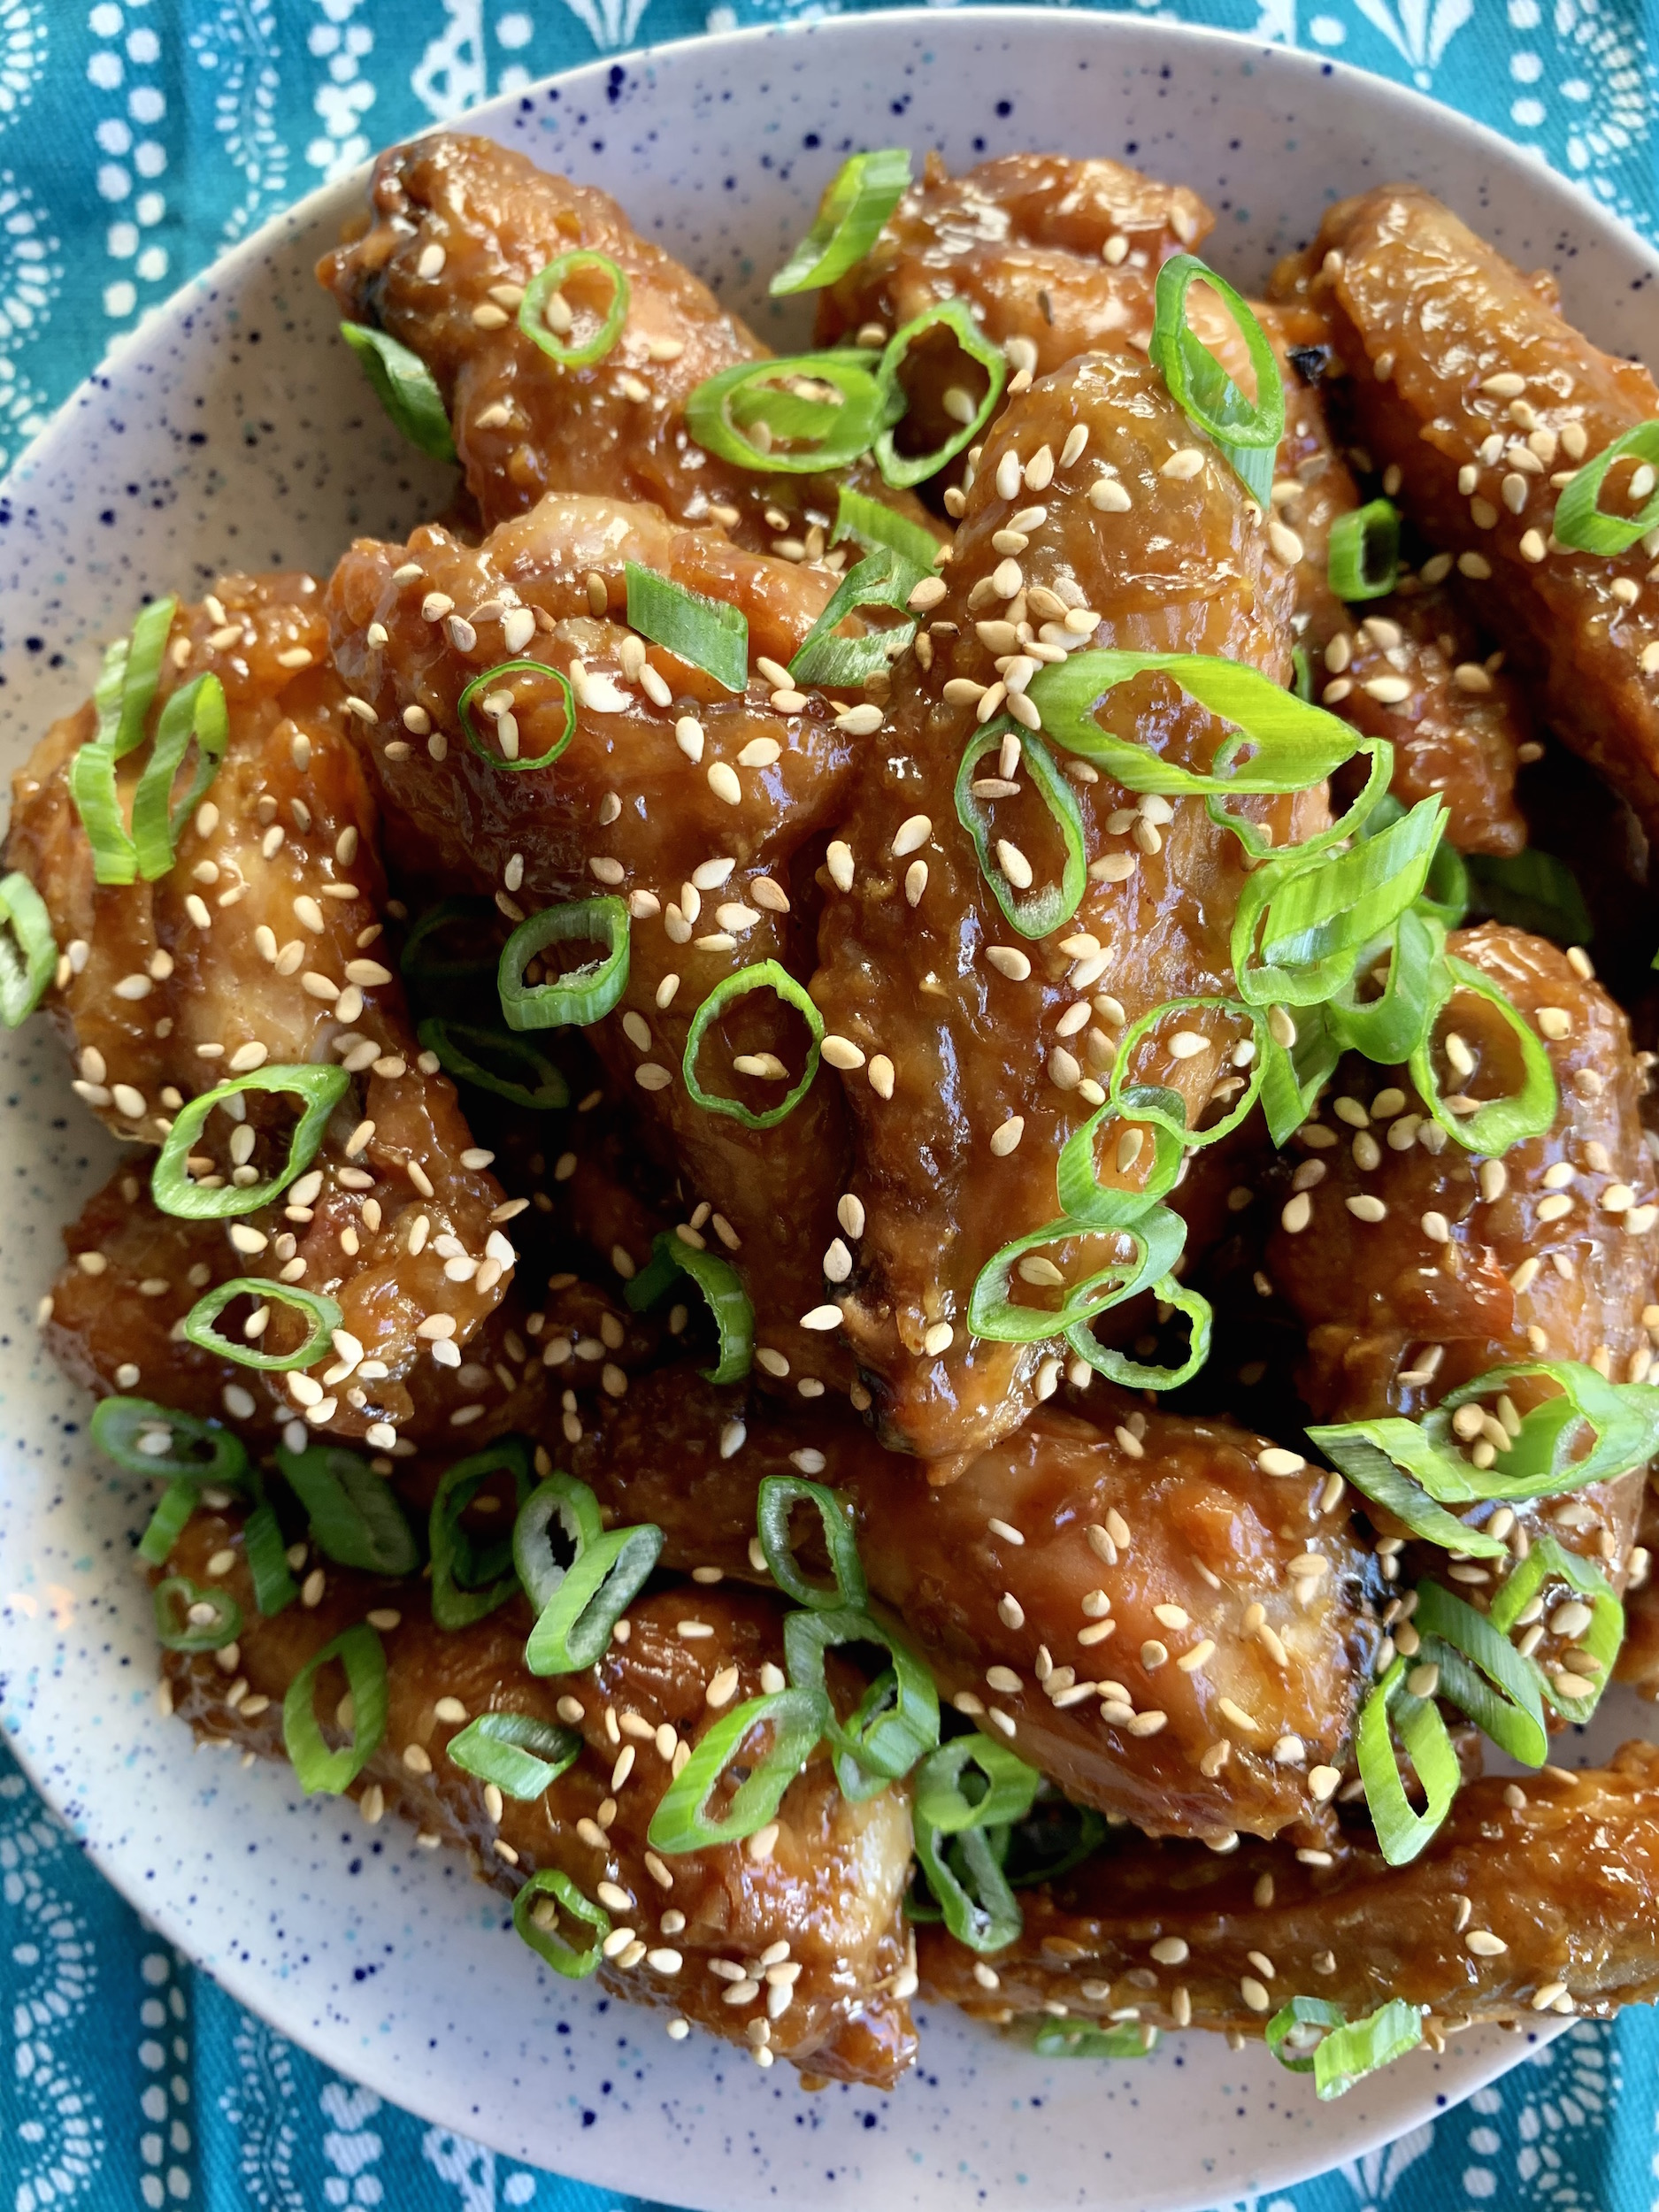 sticky crispy chicken wings garnished with sesame seeds and scallions in a white dish on a blue patterned tablecloth